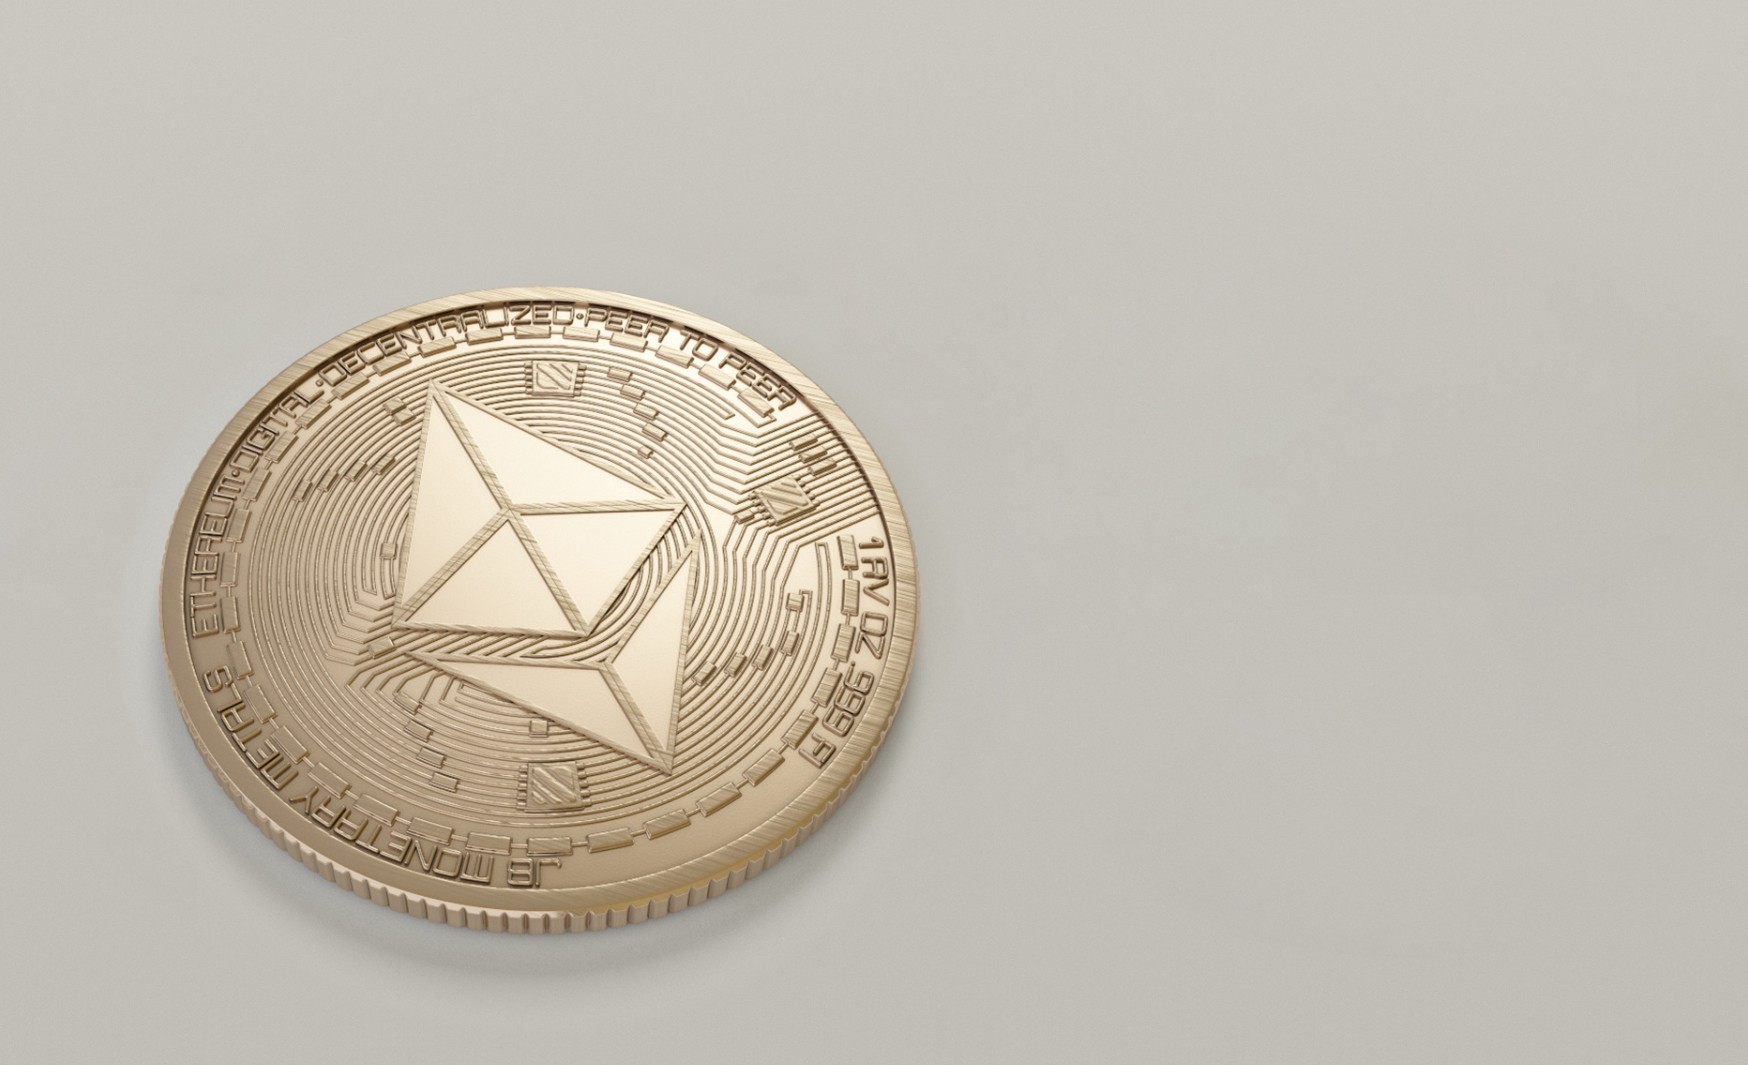 An imagined Ethereum coin on a table